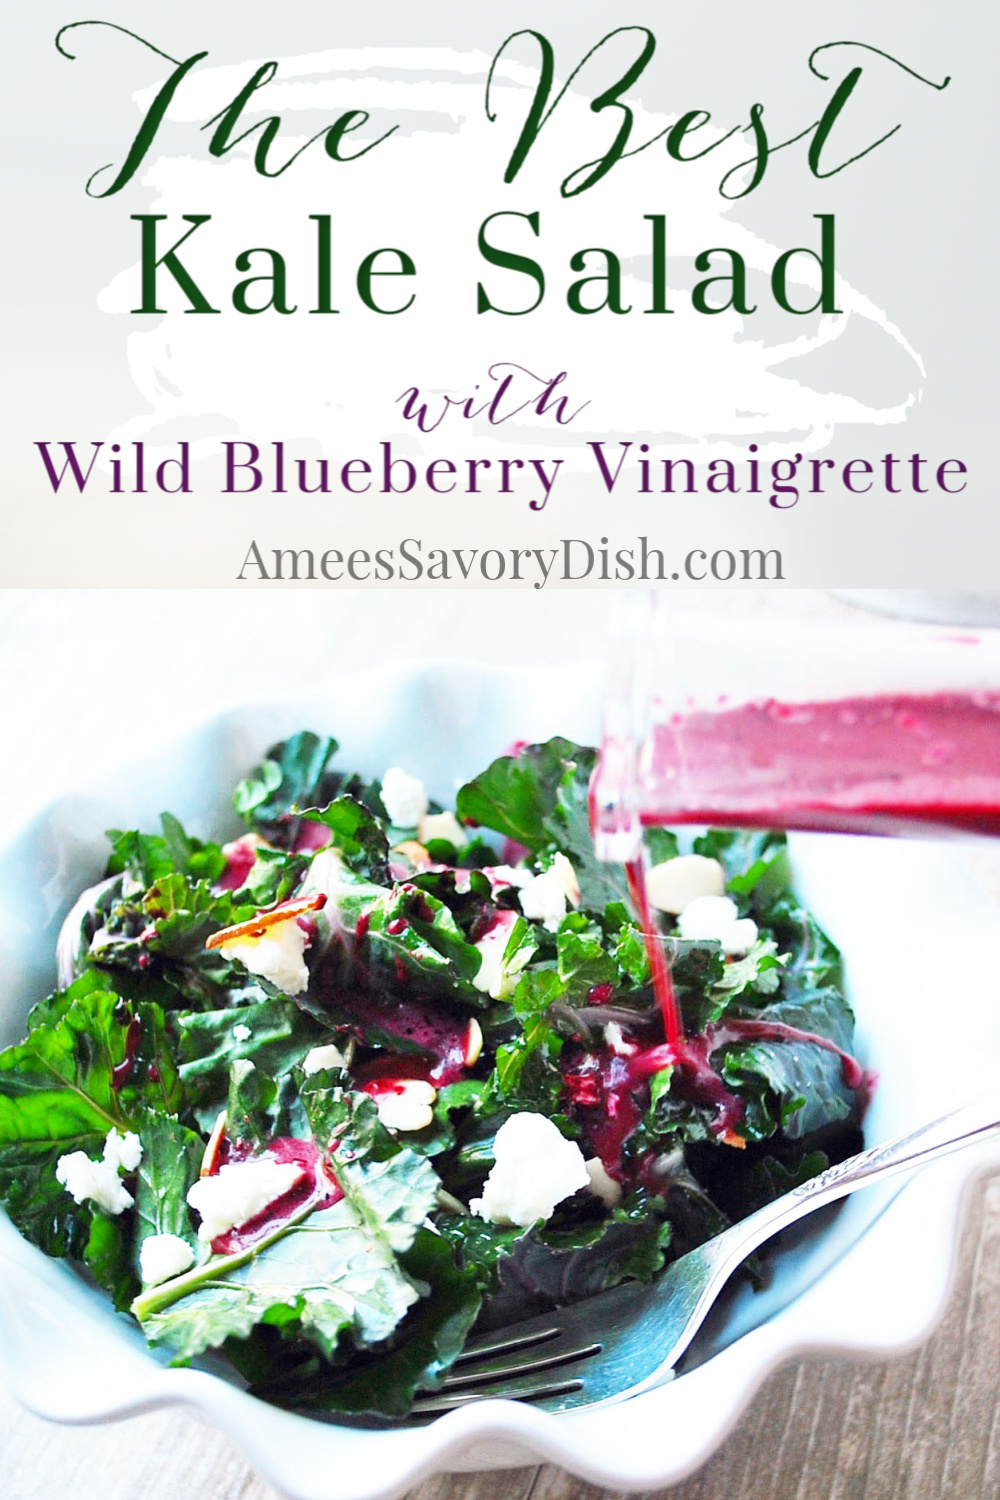 A deliciously easy kale superfood salad recipe made with Kalettes, a new hybrid power green, crumbled goat cheese, slivered almonds with a homemade wild blueberry vinaigrette dressing. #kalesalad #superfoodsalad #kalerecipe #salad via @Ameessavorydish